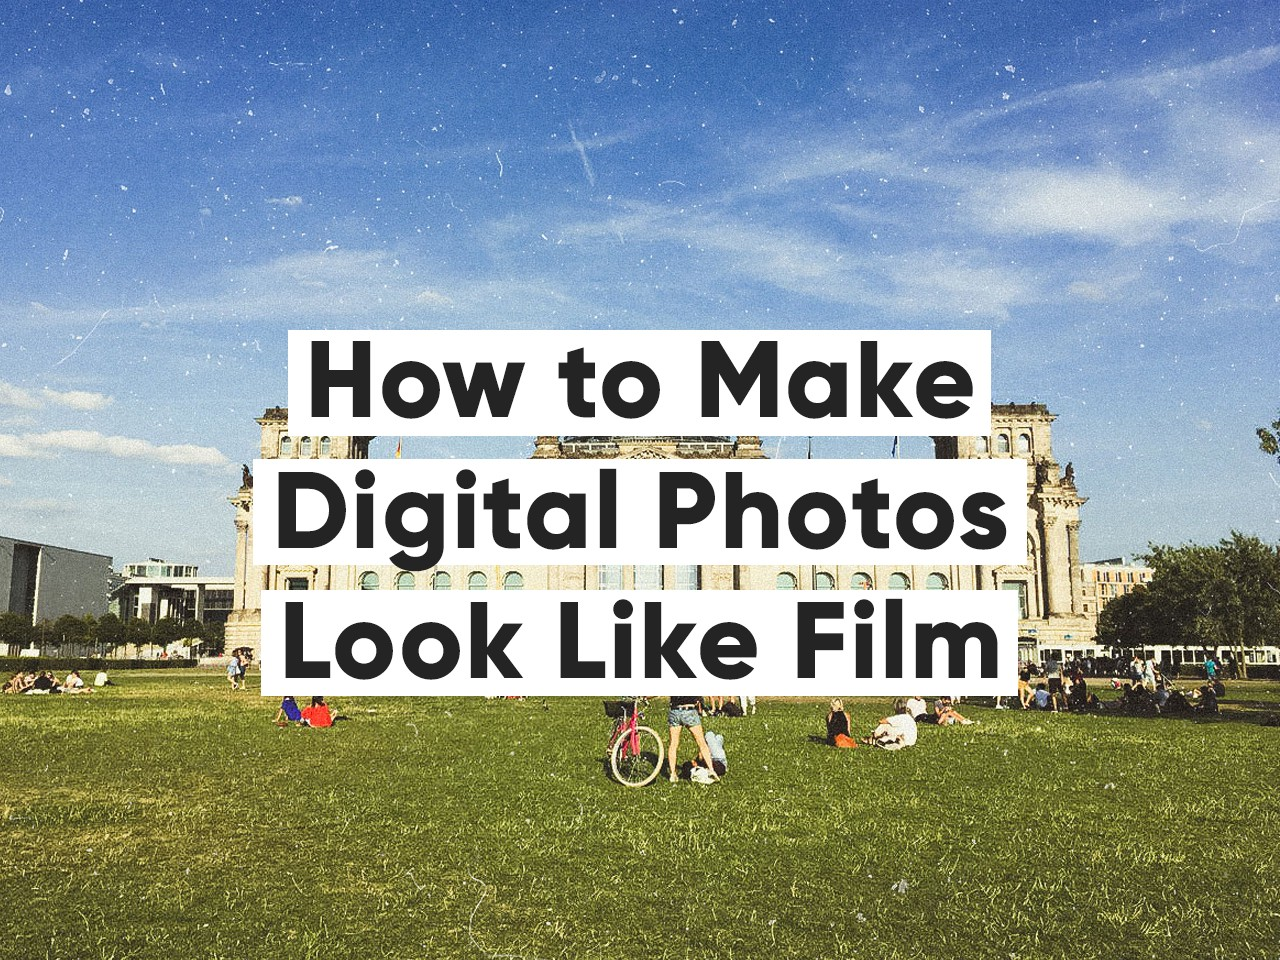 How to Make Digital Photos Look Like Film (Instructions with